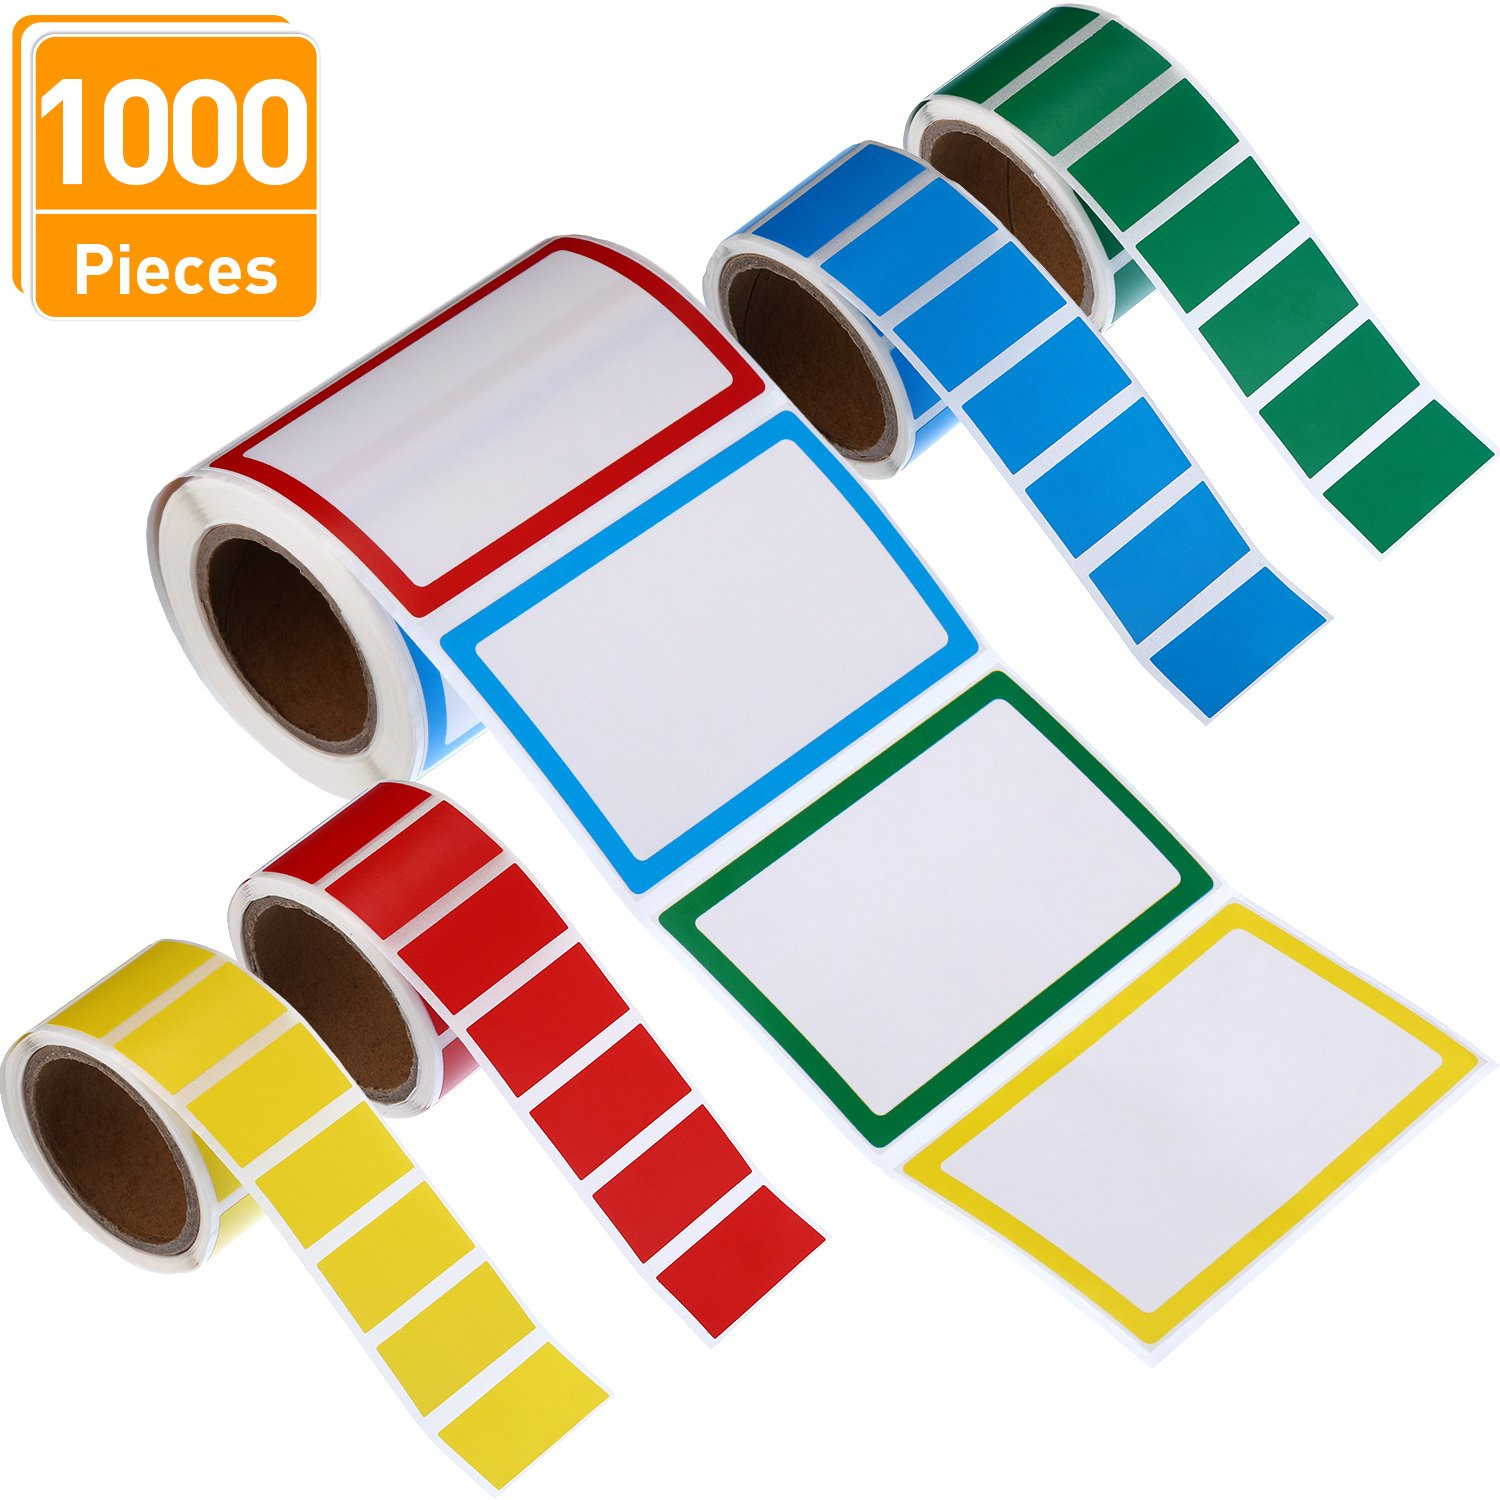 Blulu 1000 Pieces Name Tag Labels Name Label Stickers Adhesive Name Badges for Parties Schools Jars Bottles Kids Clothes, 2 Sizes